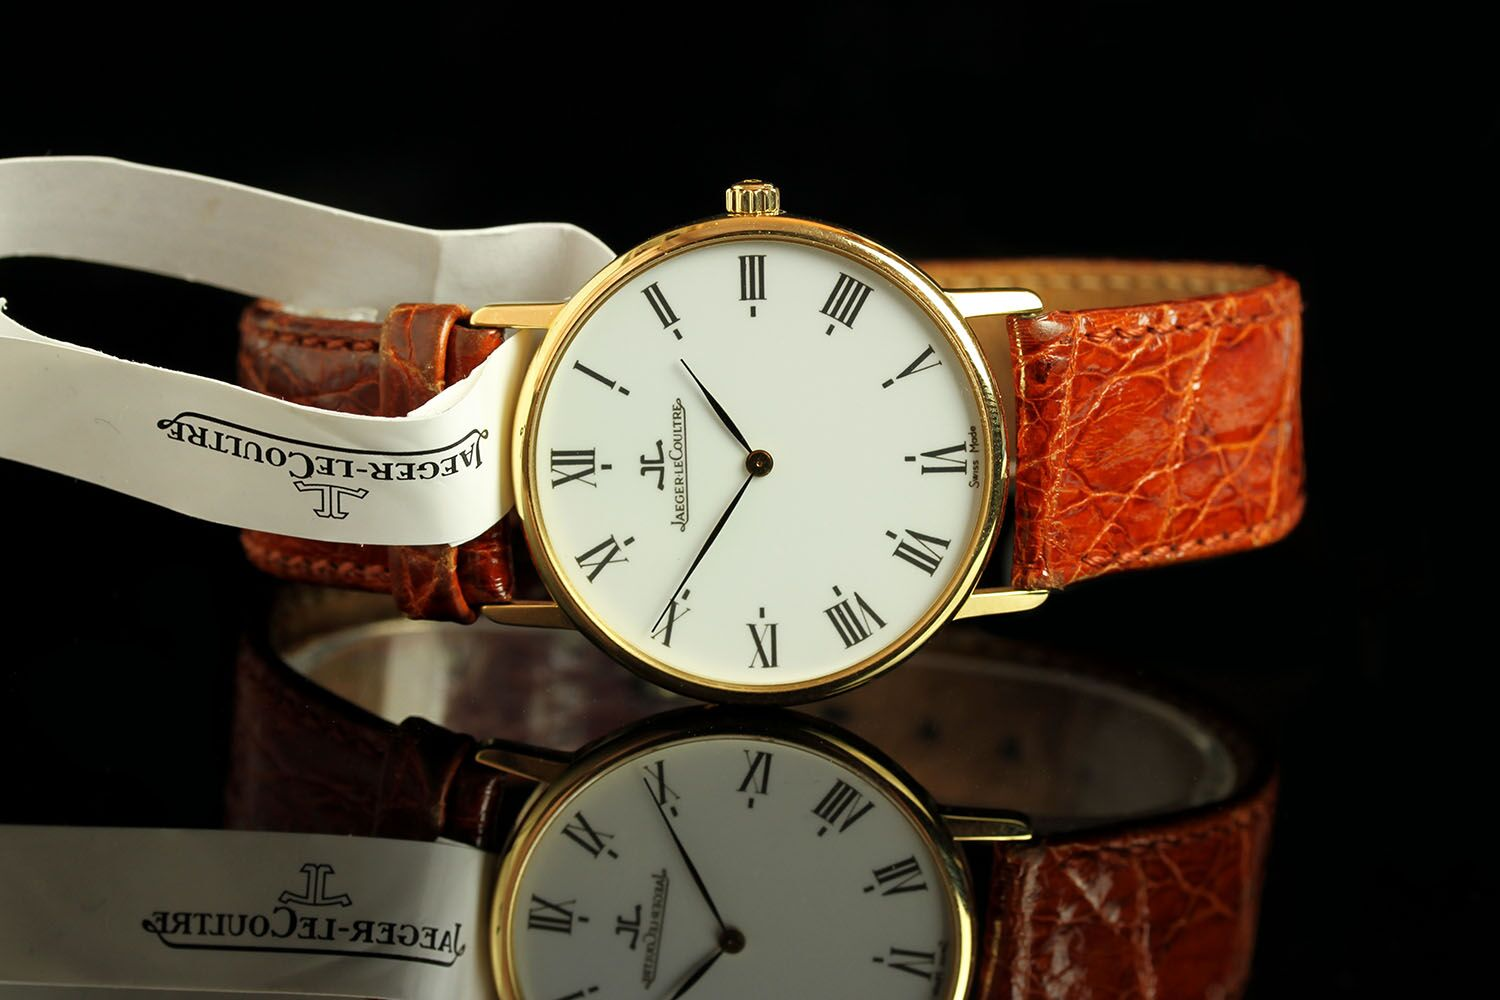 GENTLEMANS 18K JAEGER-LE COULTRE 111.1.09 / 1946287,round, off white dial with black hands, black